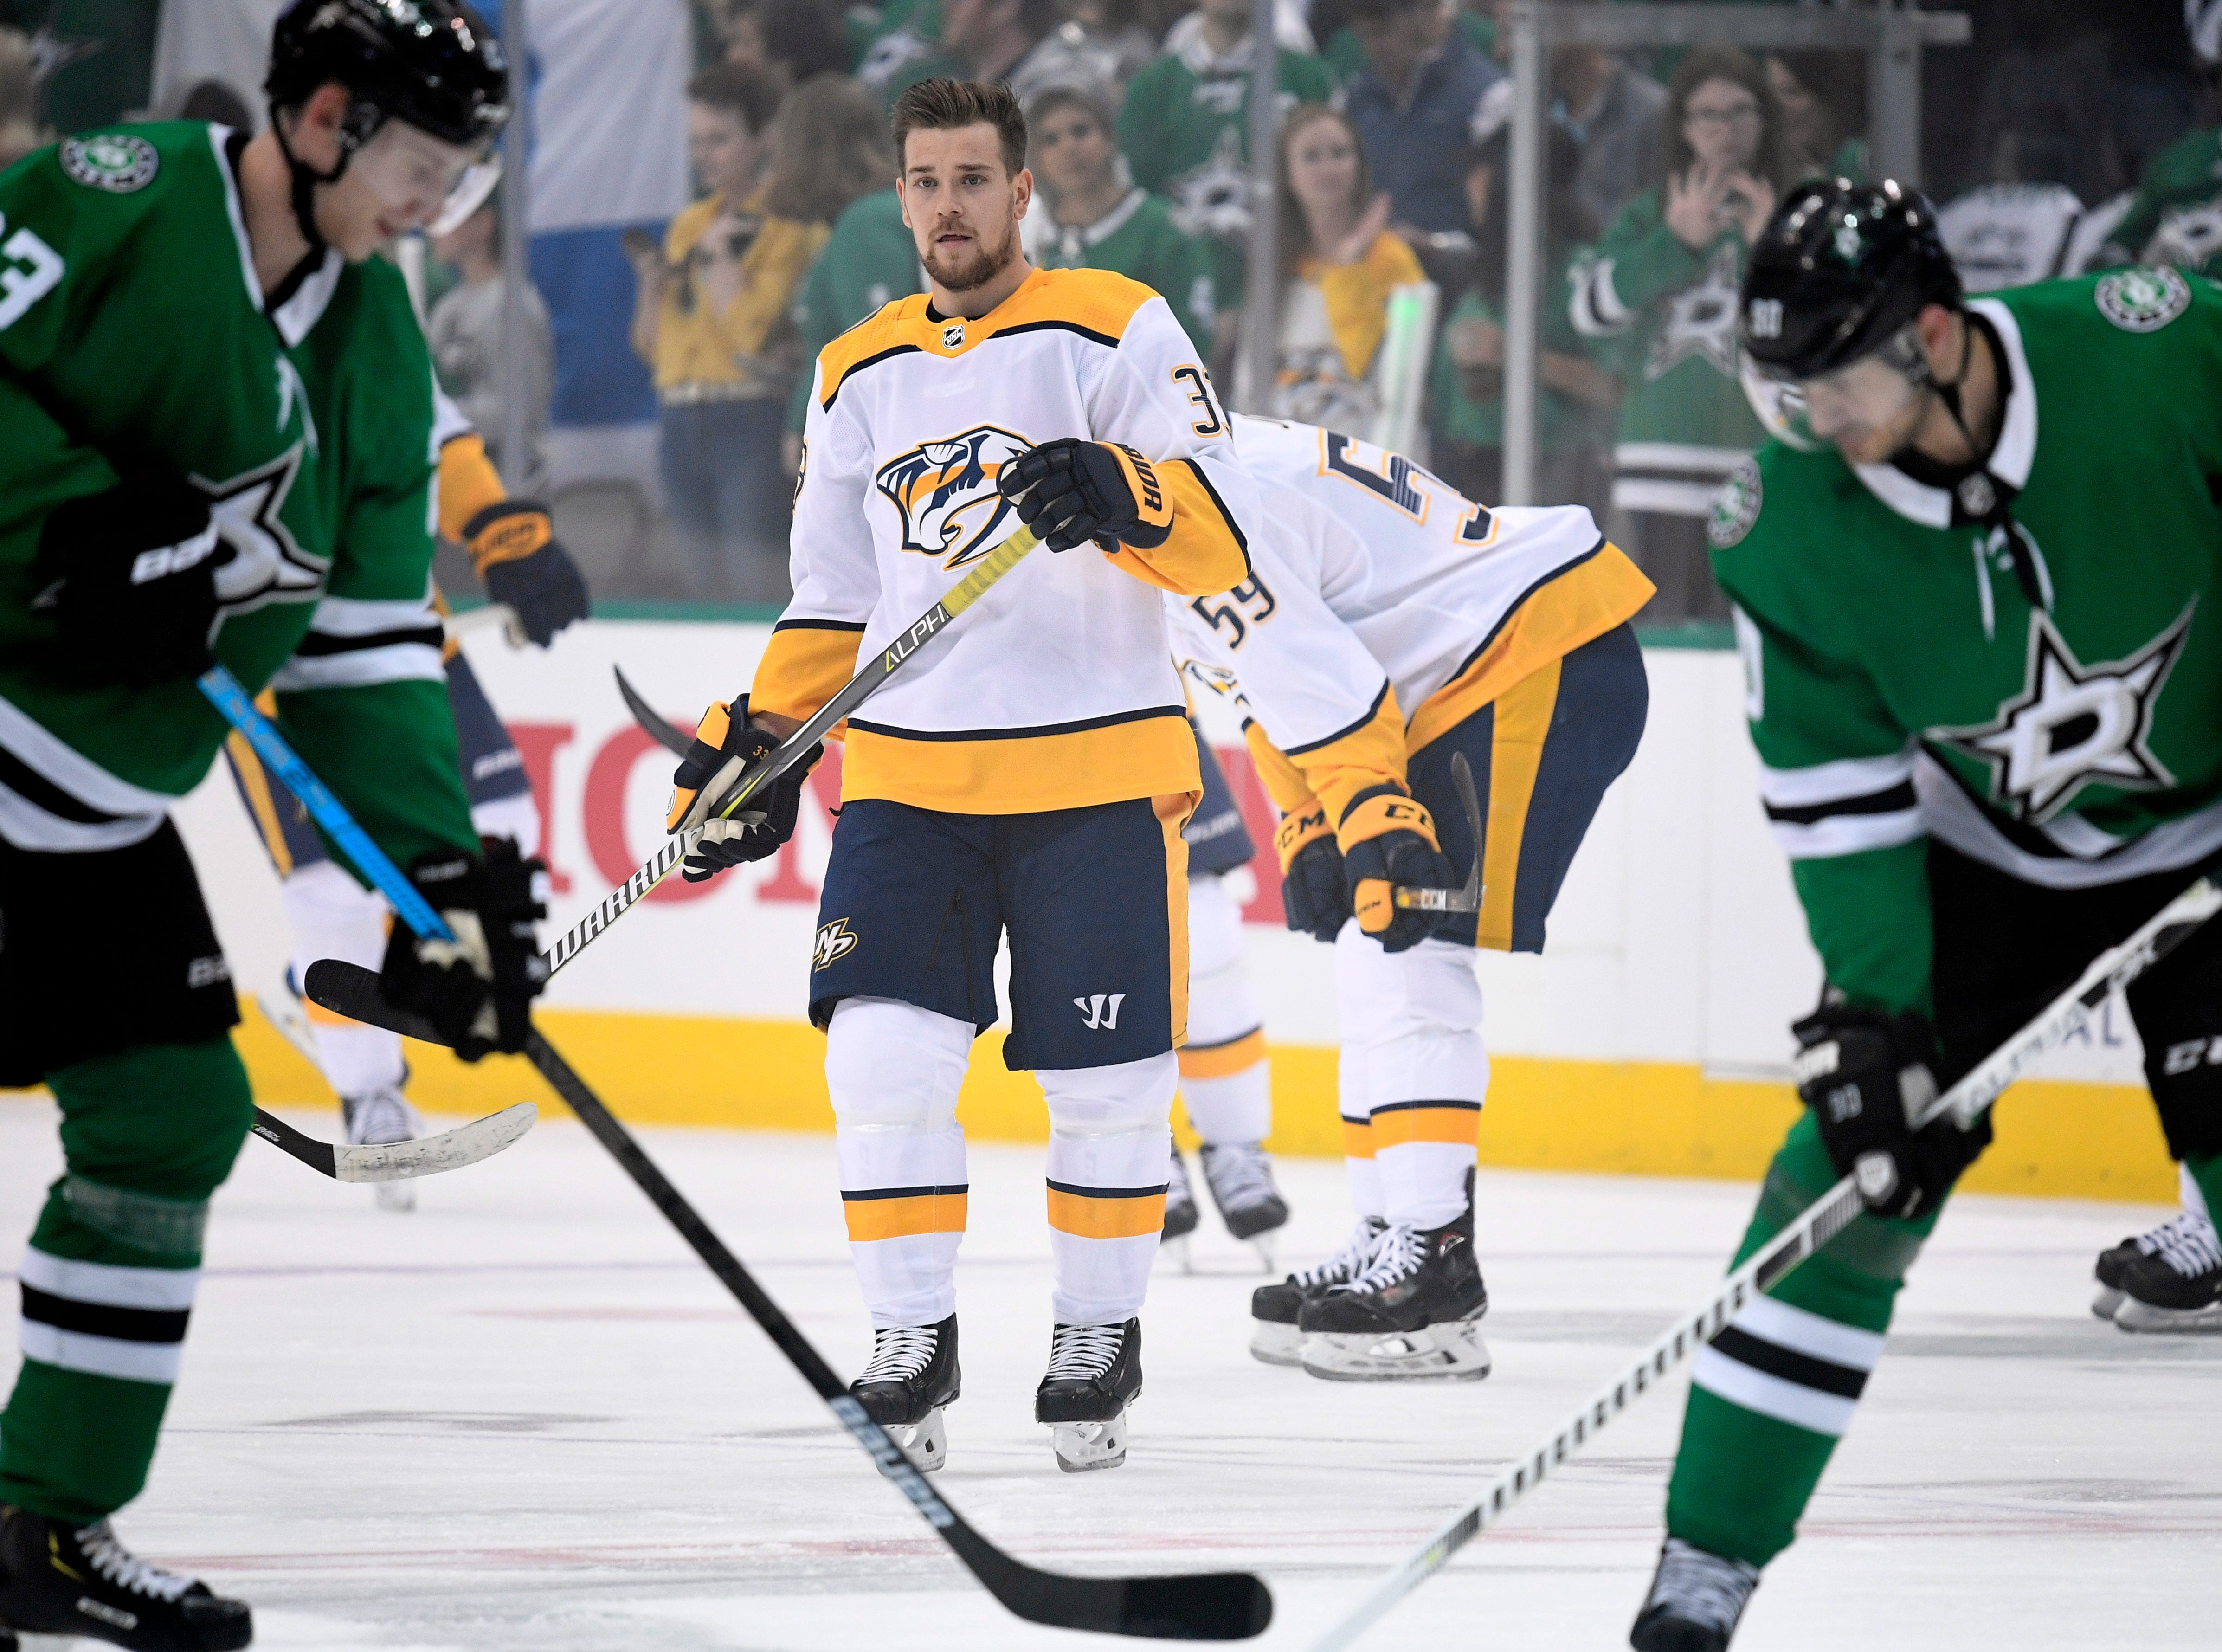 Nashville Predators right wing Viktor Arvidsson (33) warms up surrounded by  Stars players before the divisional semifinal game at the American Airlines Center in Dallas, Texas., Monday, April 15, 2019.